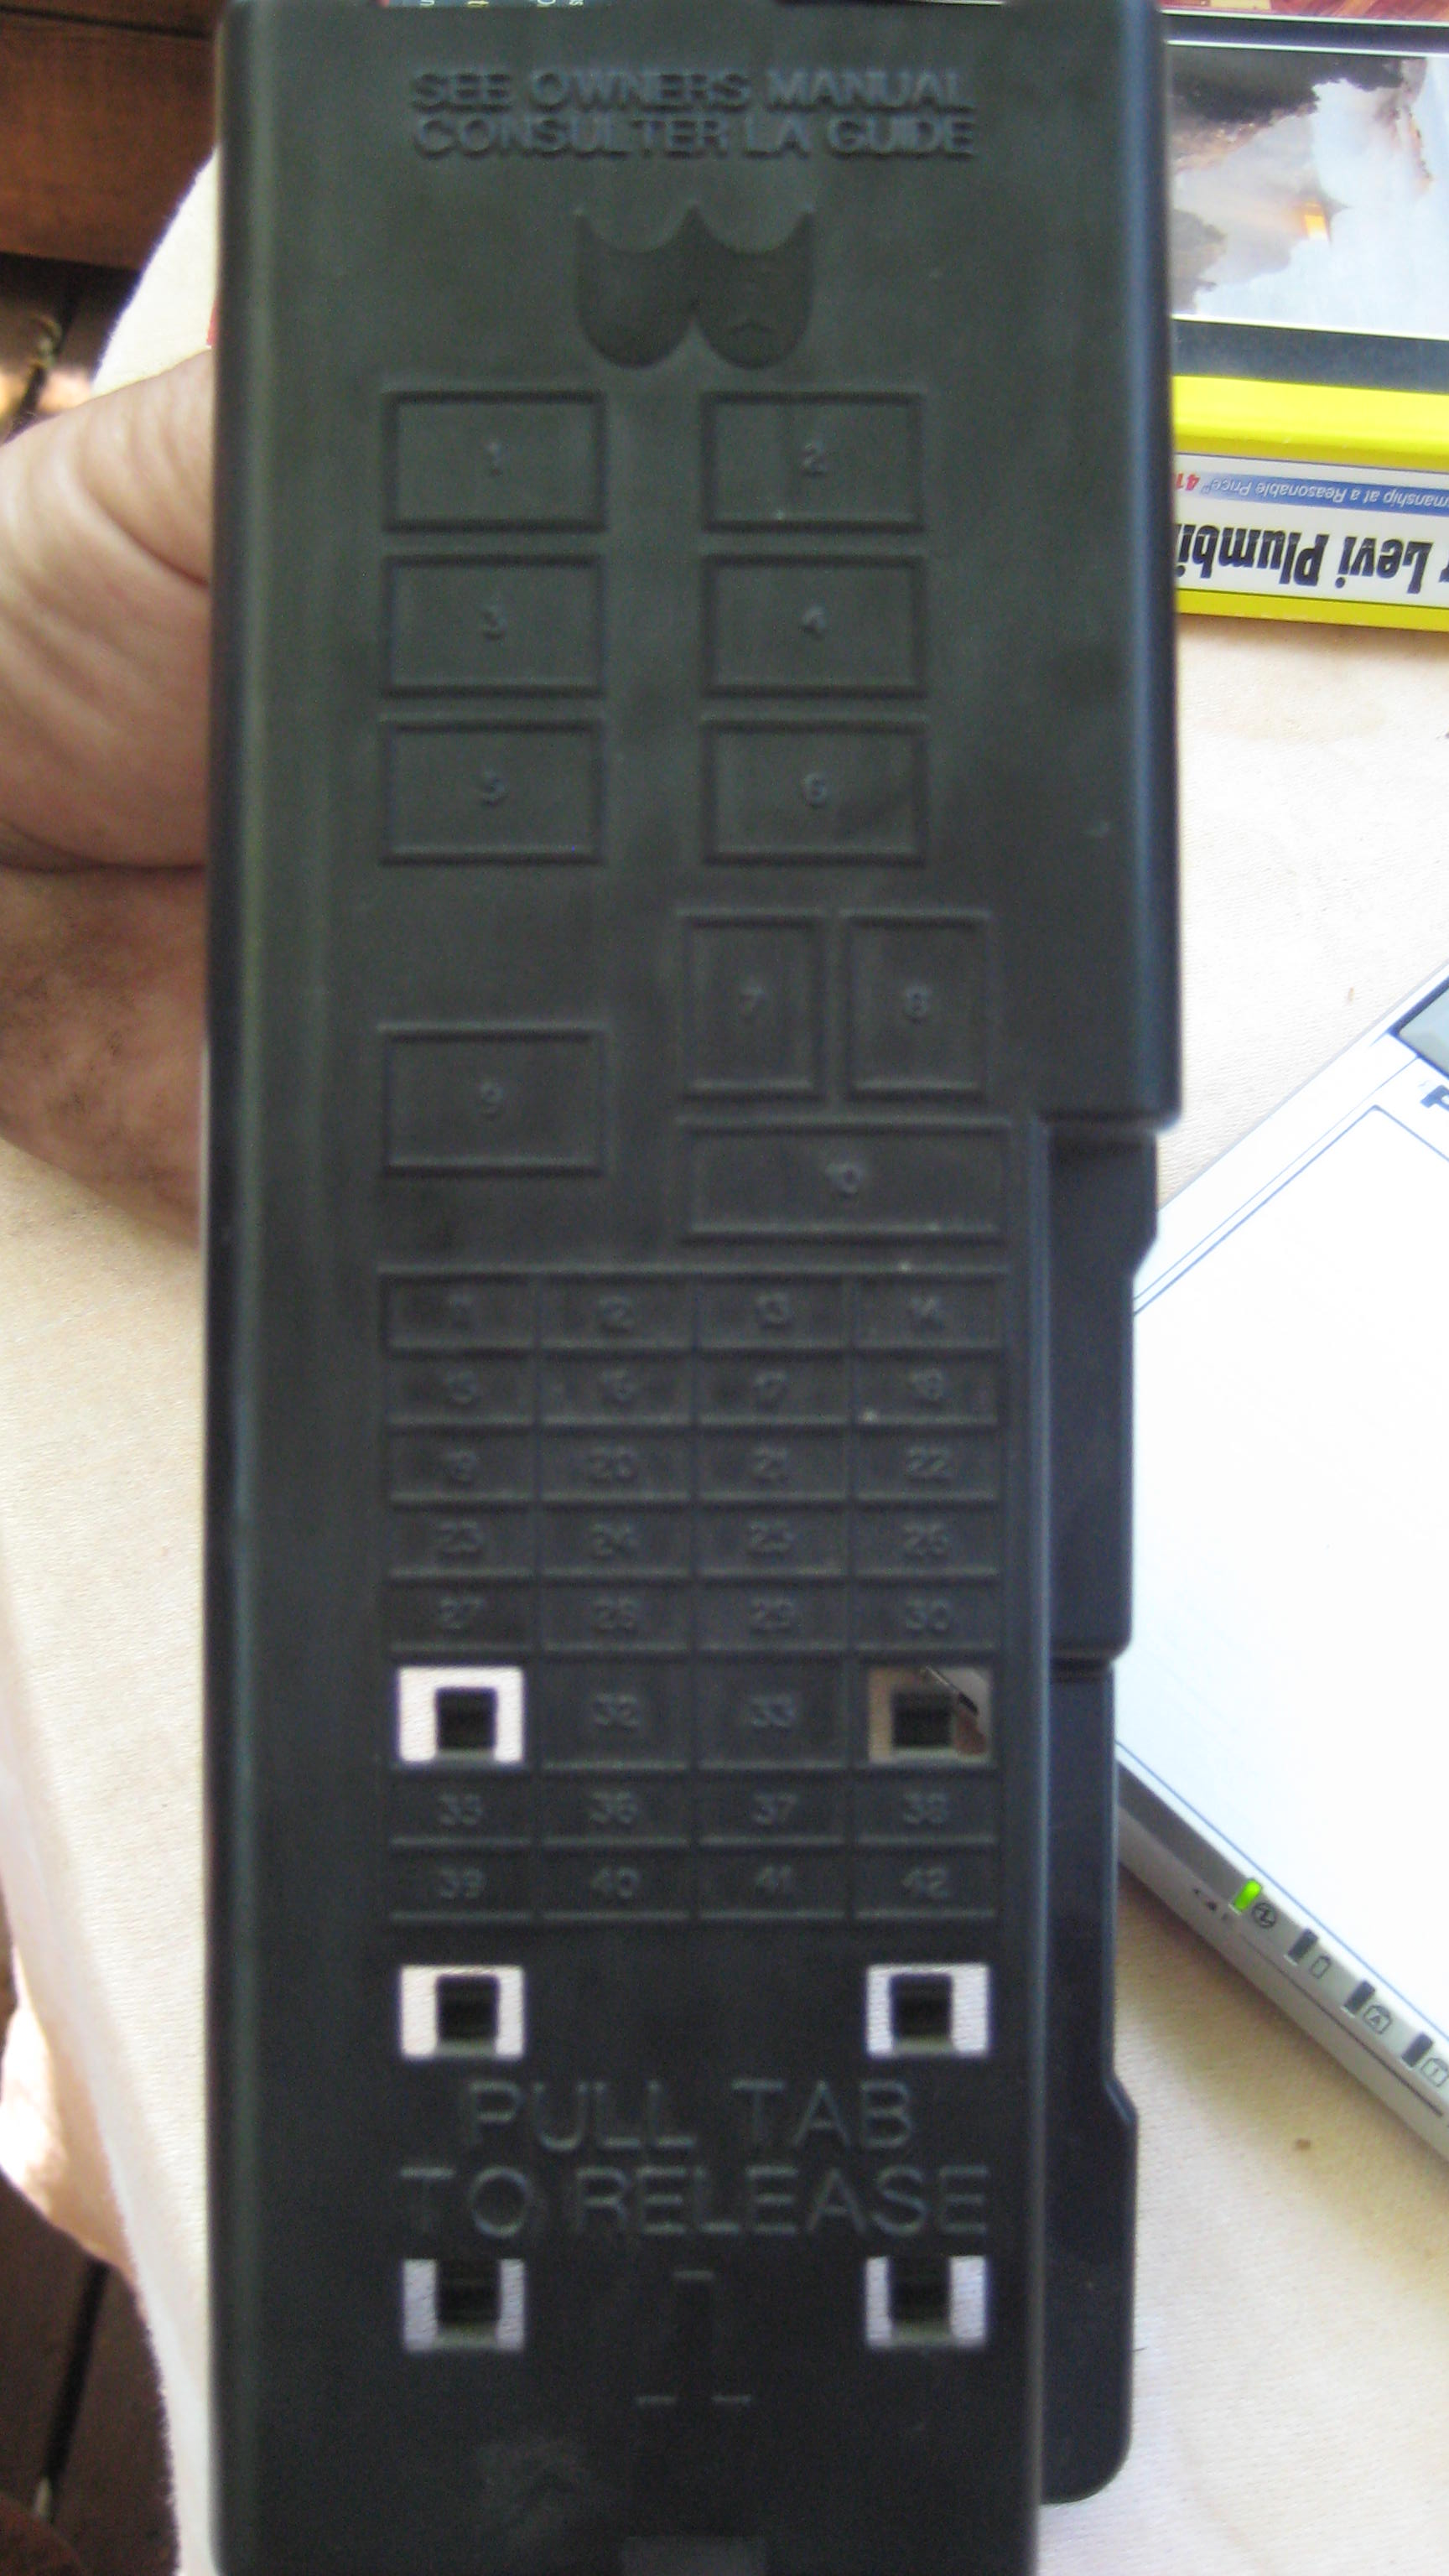 which fuse in a 2006 ford taurus will control the power 2006 ford taurus interior fuse box location 2006 ford taurus interior fuse box location 2006 ford taurus interior fuse box location 2006 ford taurus interior fuse box location